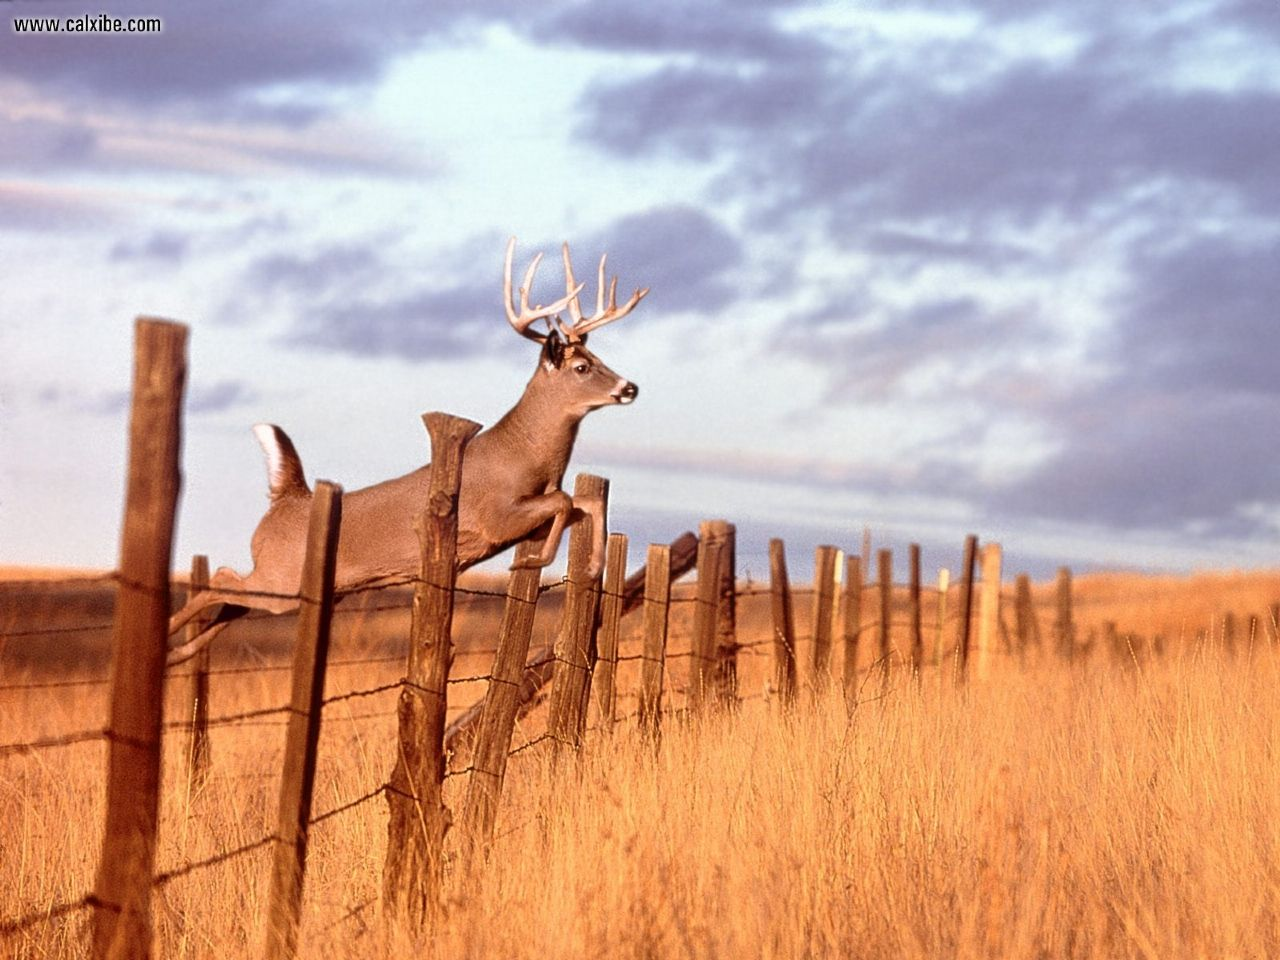 FKP53 Hunting Wallpaper Hunting Pics in Best Resolutions 100 1280x960